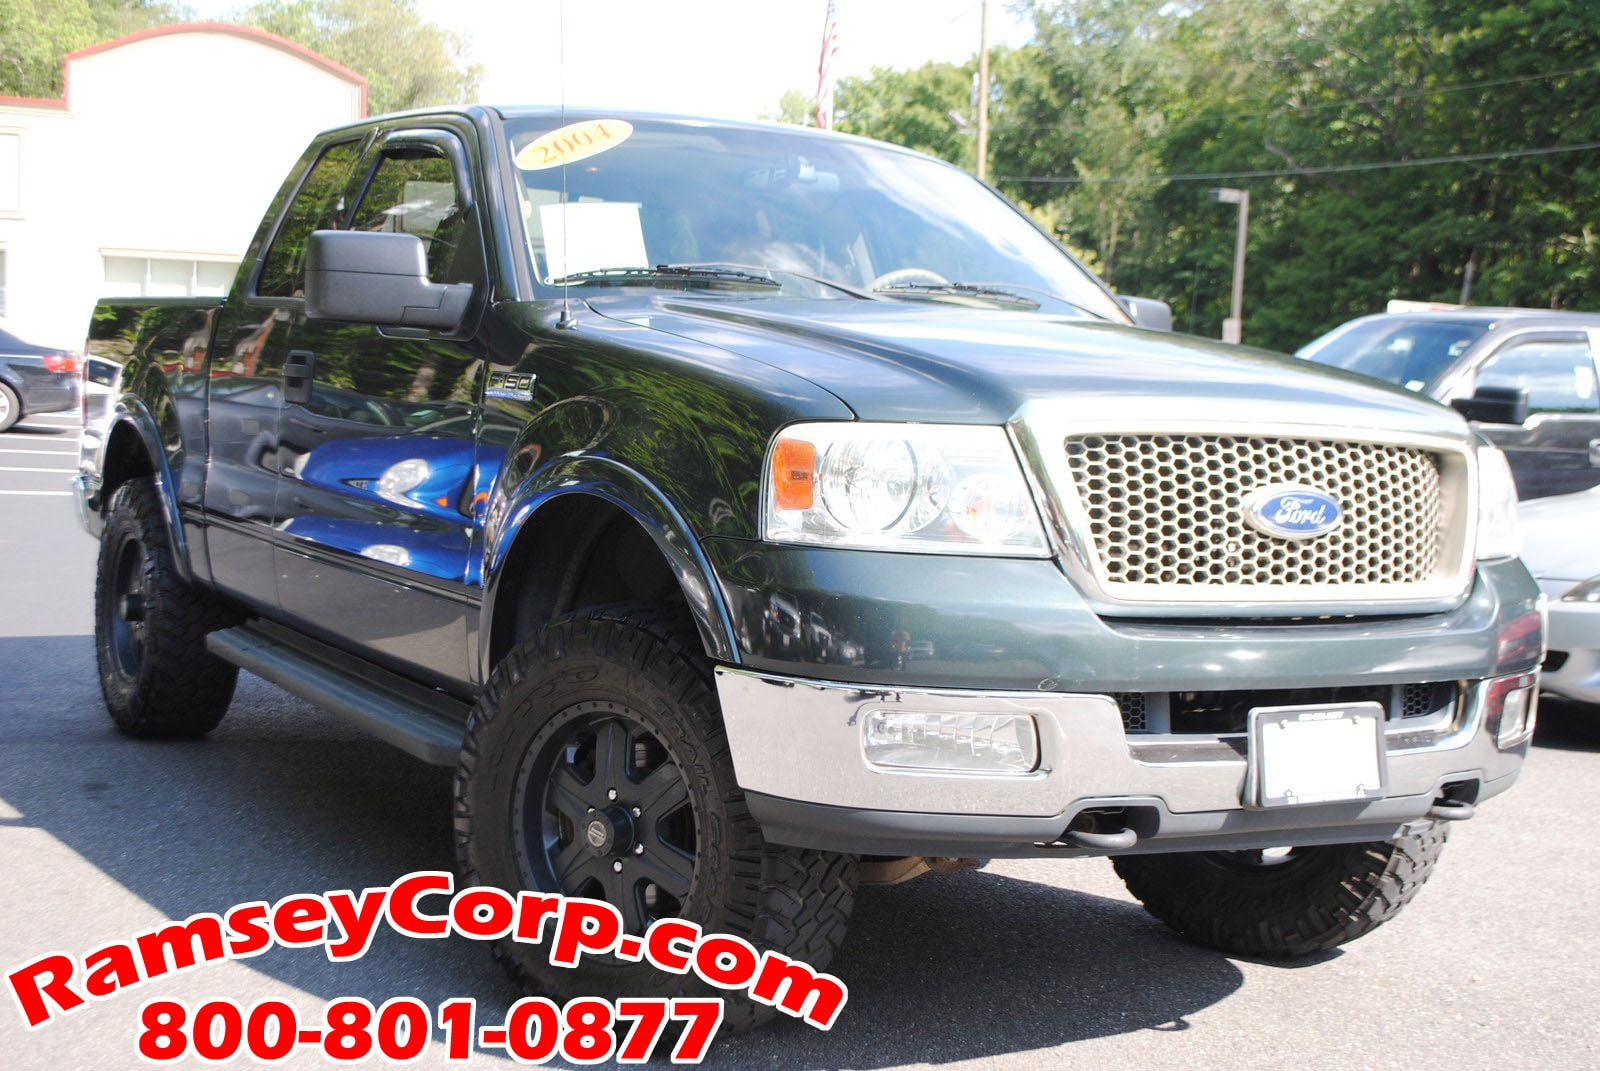 Used 2004 Ford F-150 For Sale at Ramsey Corp  | VIN: 1FTPX14544KB27172